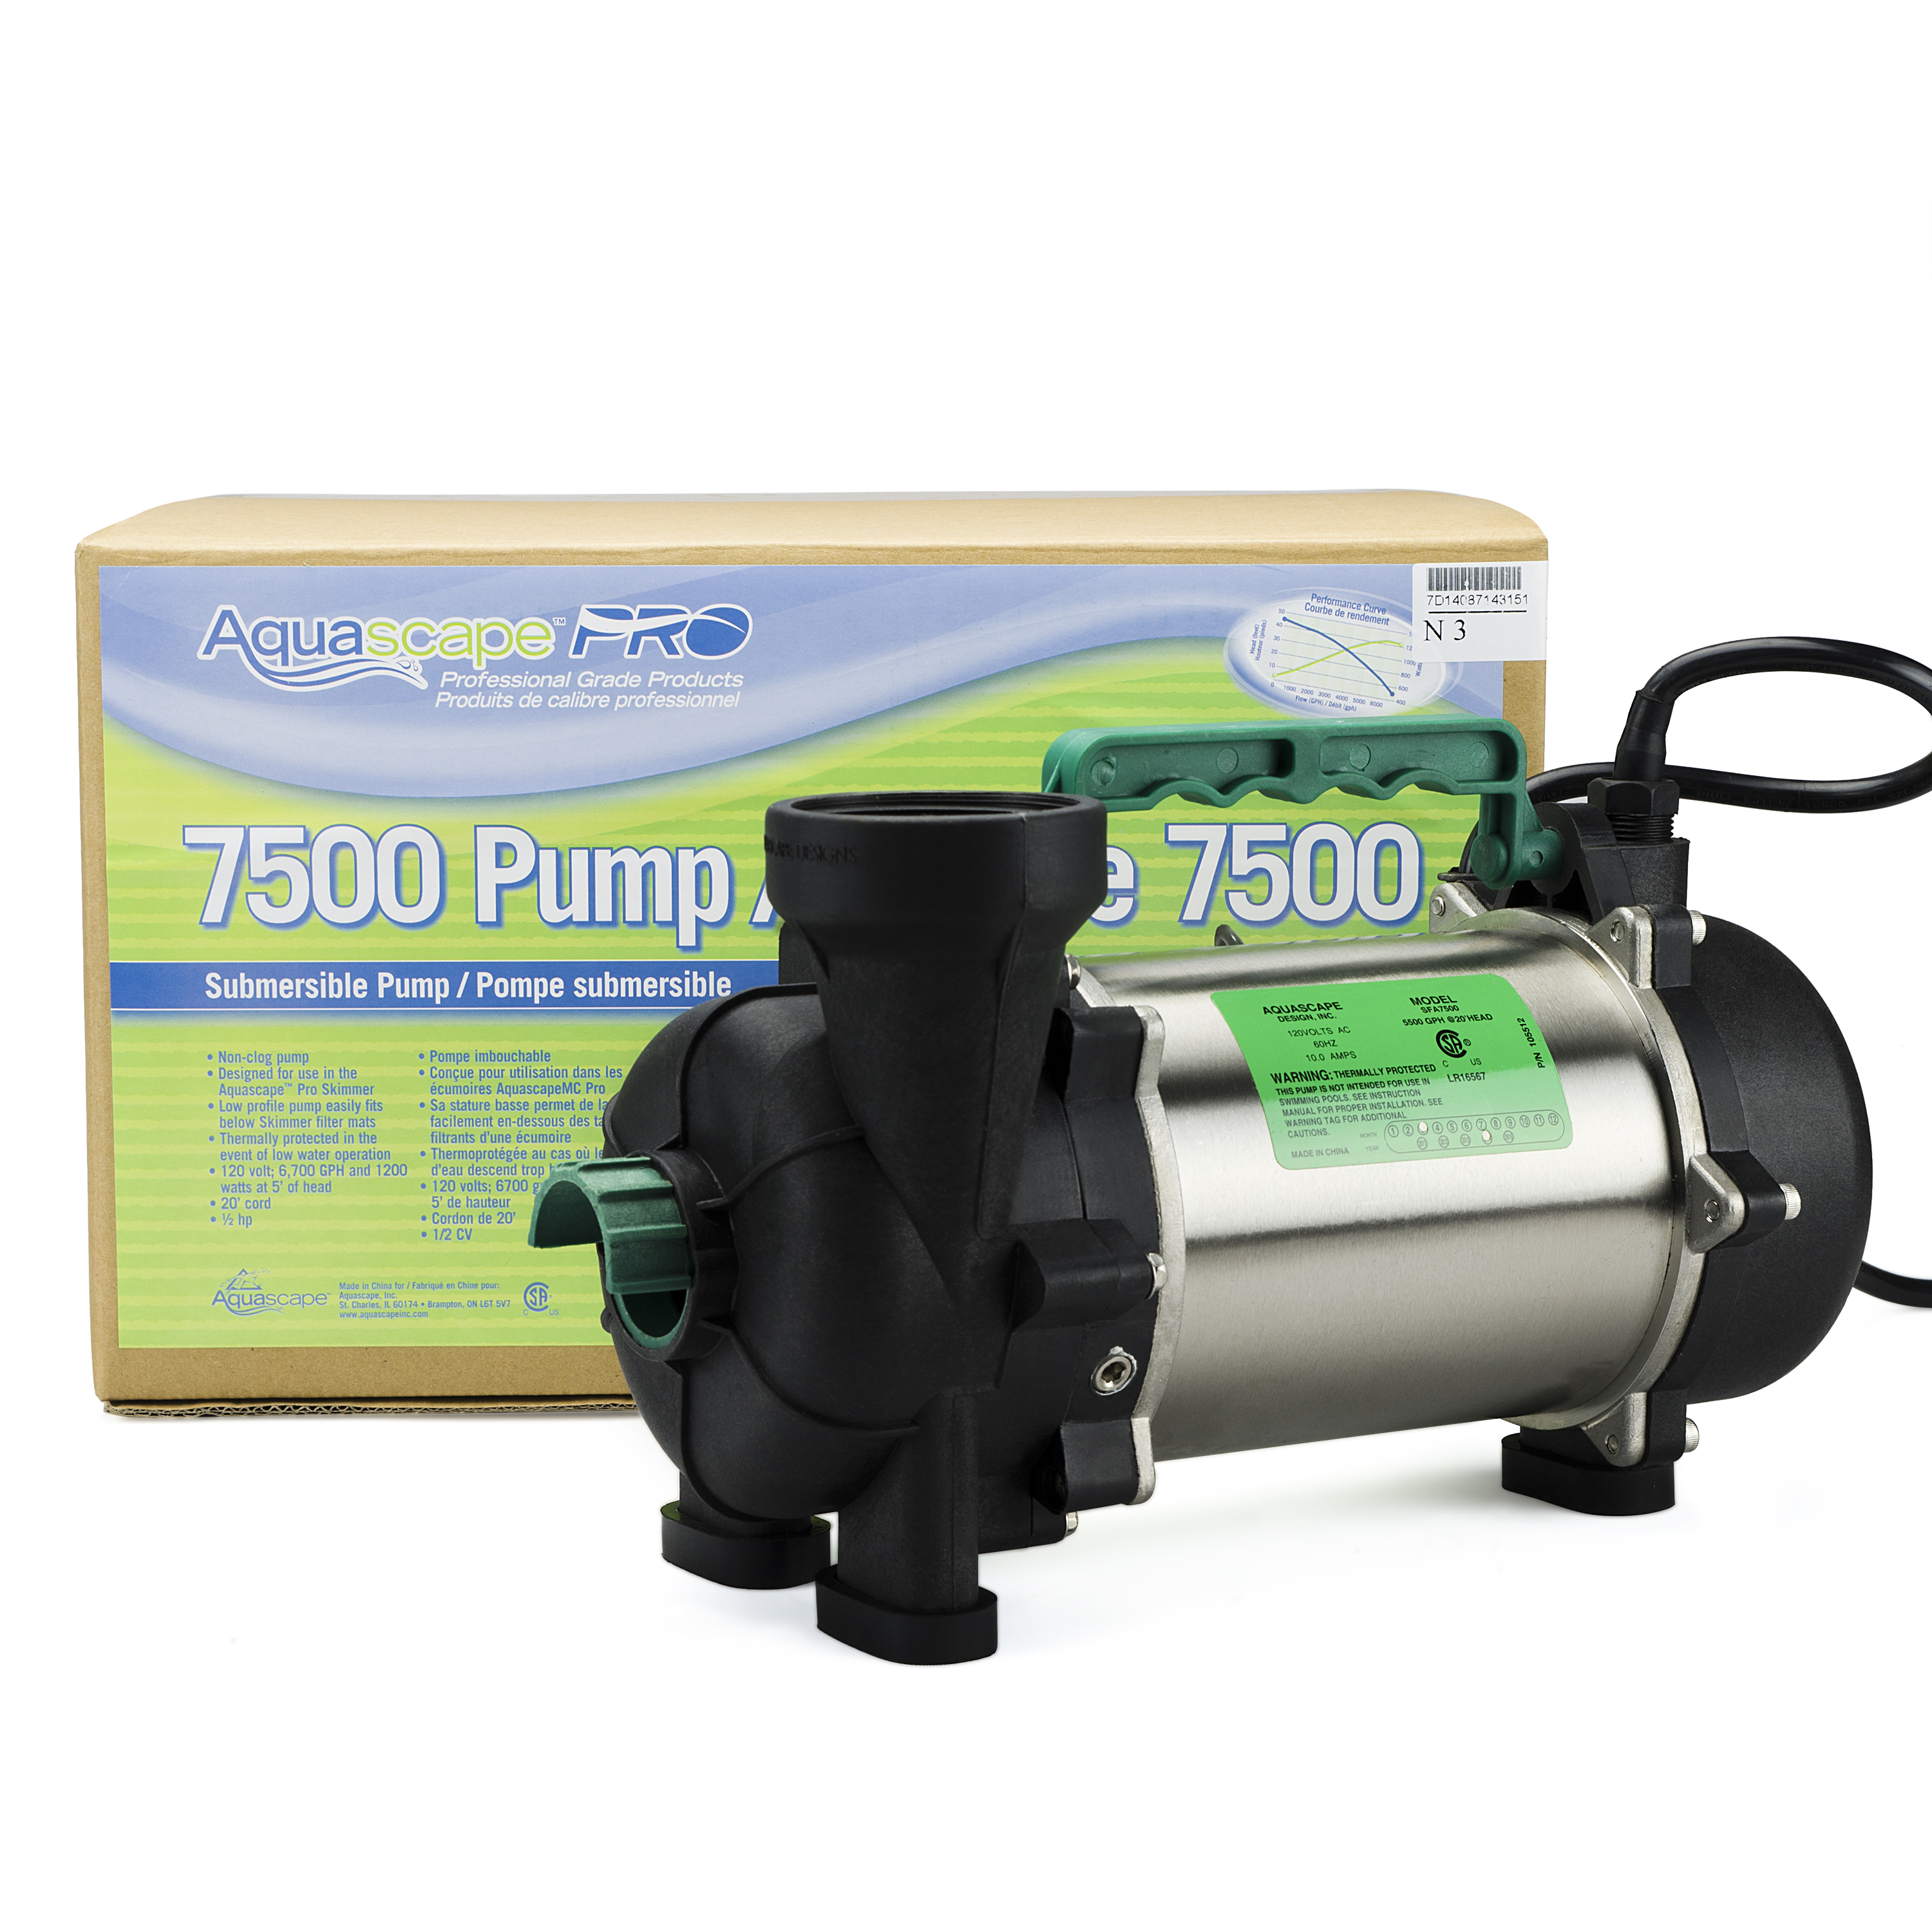 AquascapePRO 7500 Pond Pump